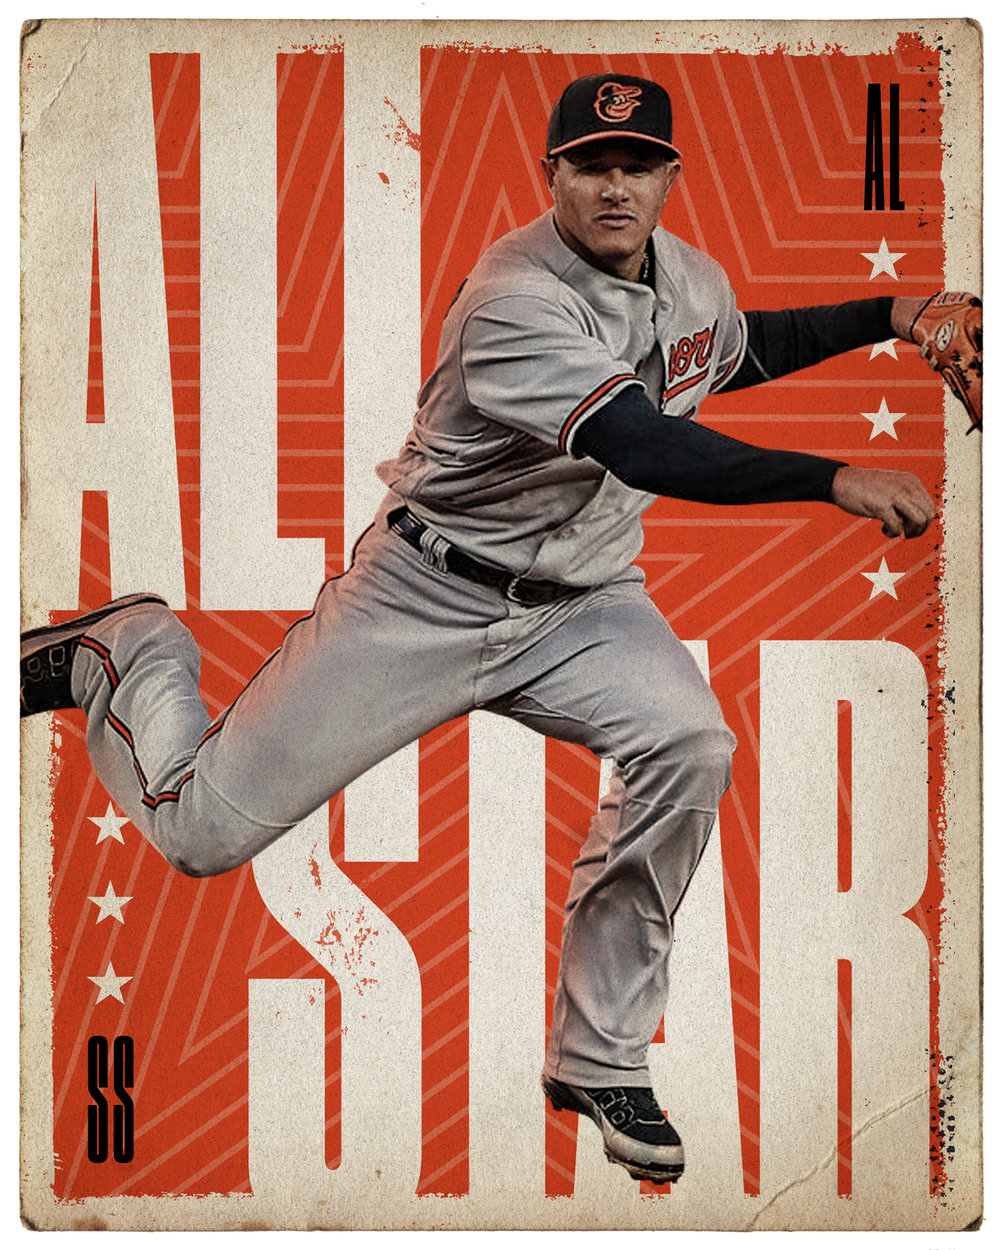 Orioles_All-Star_Machado_v2.jpg